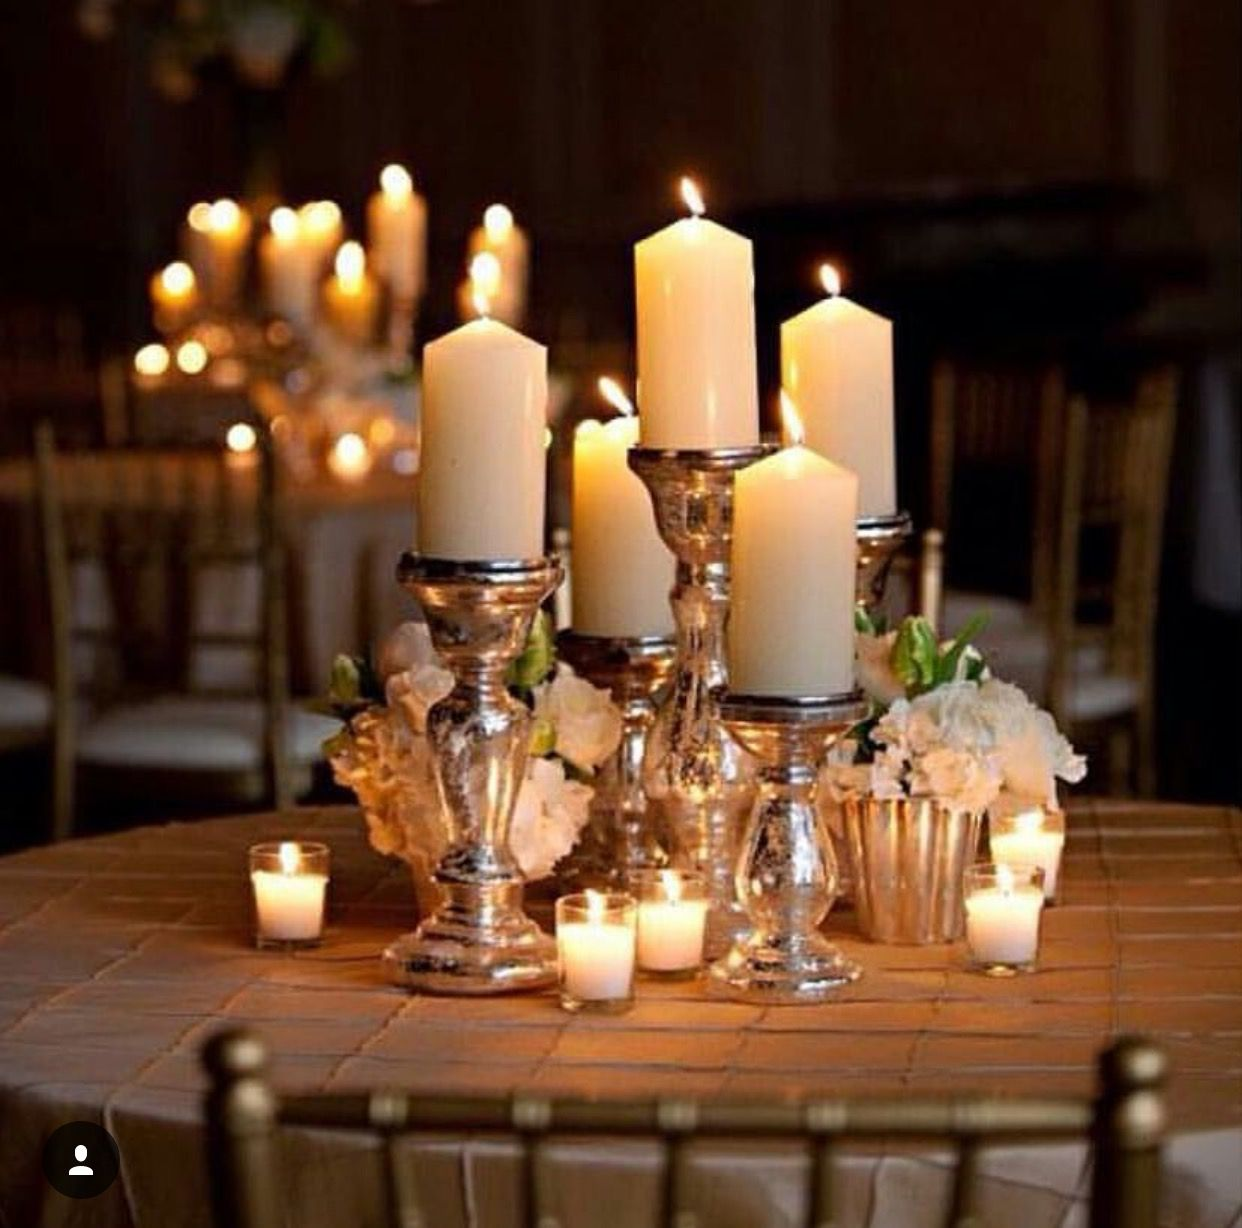 Wedding Reception Centerpieces Candles: Candles Can Make A Beautiful Wedding Centerpiece